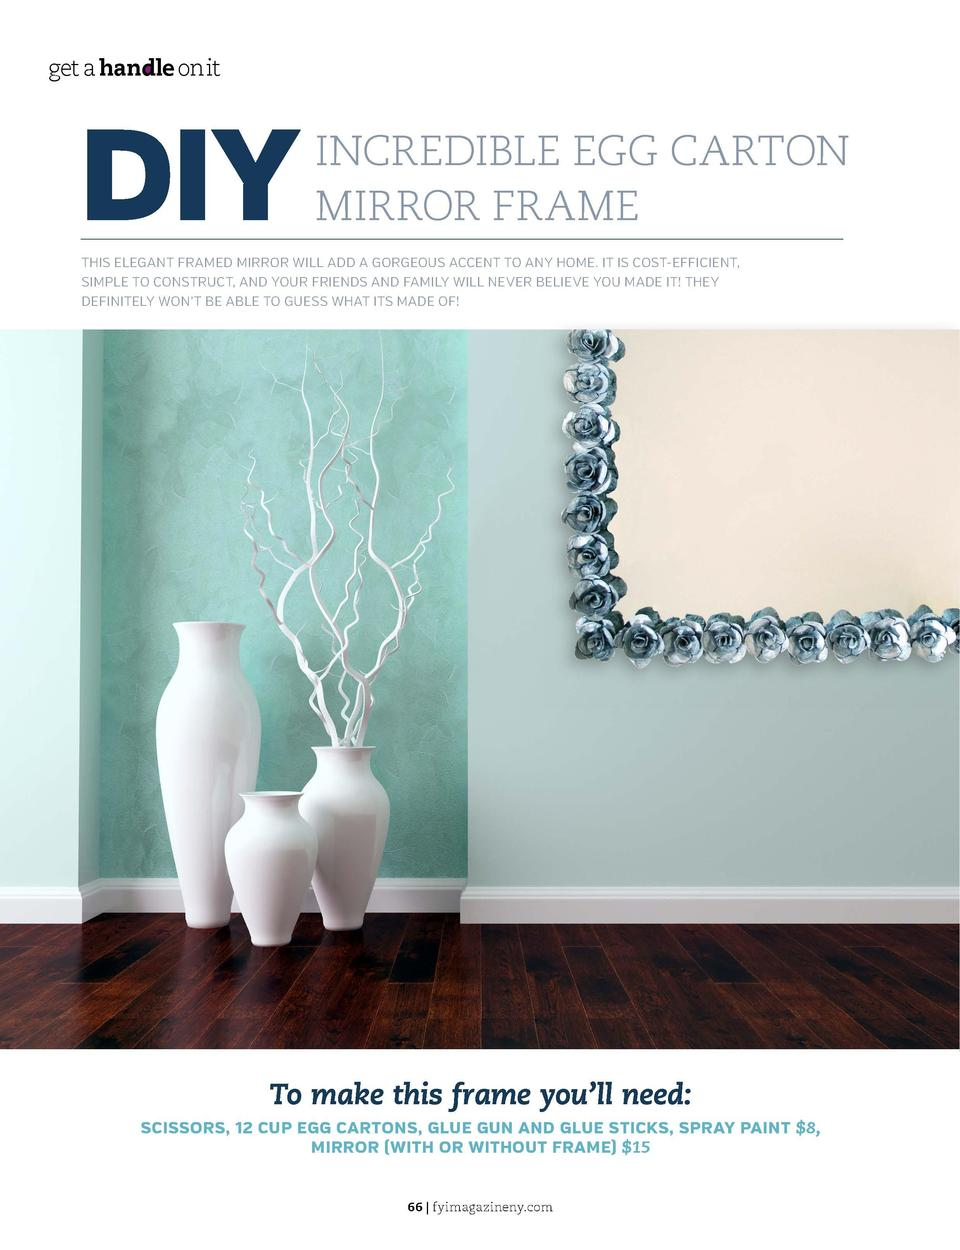 get a handle on it  get a handle on it  DIY  INCREDIBLE EGG CARTON MIRROR FRAME  THIS ELEGANT FRAMED MIRROR WILL ADD A GOR...